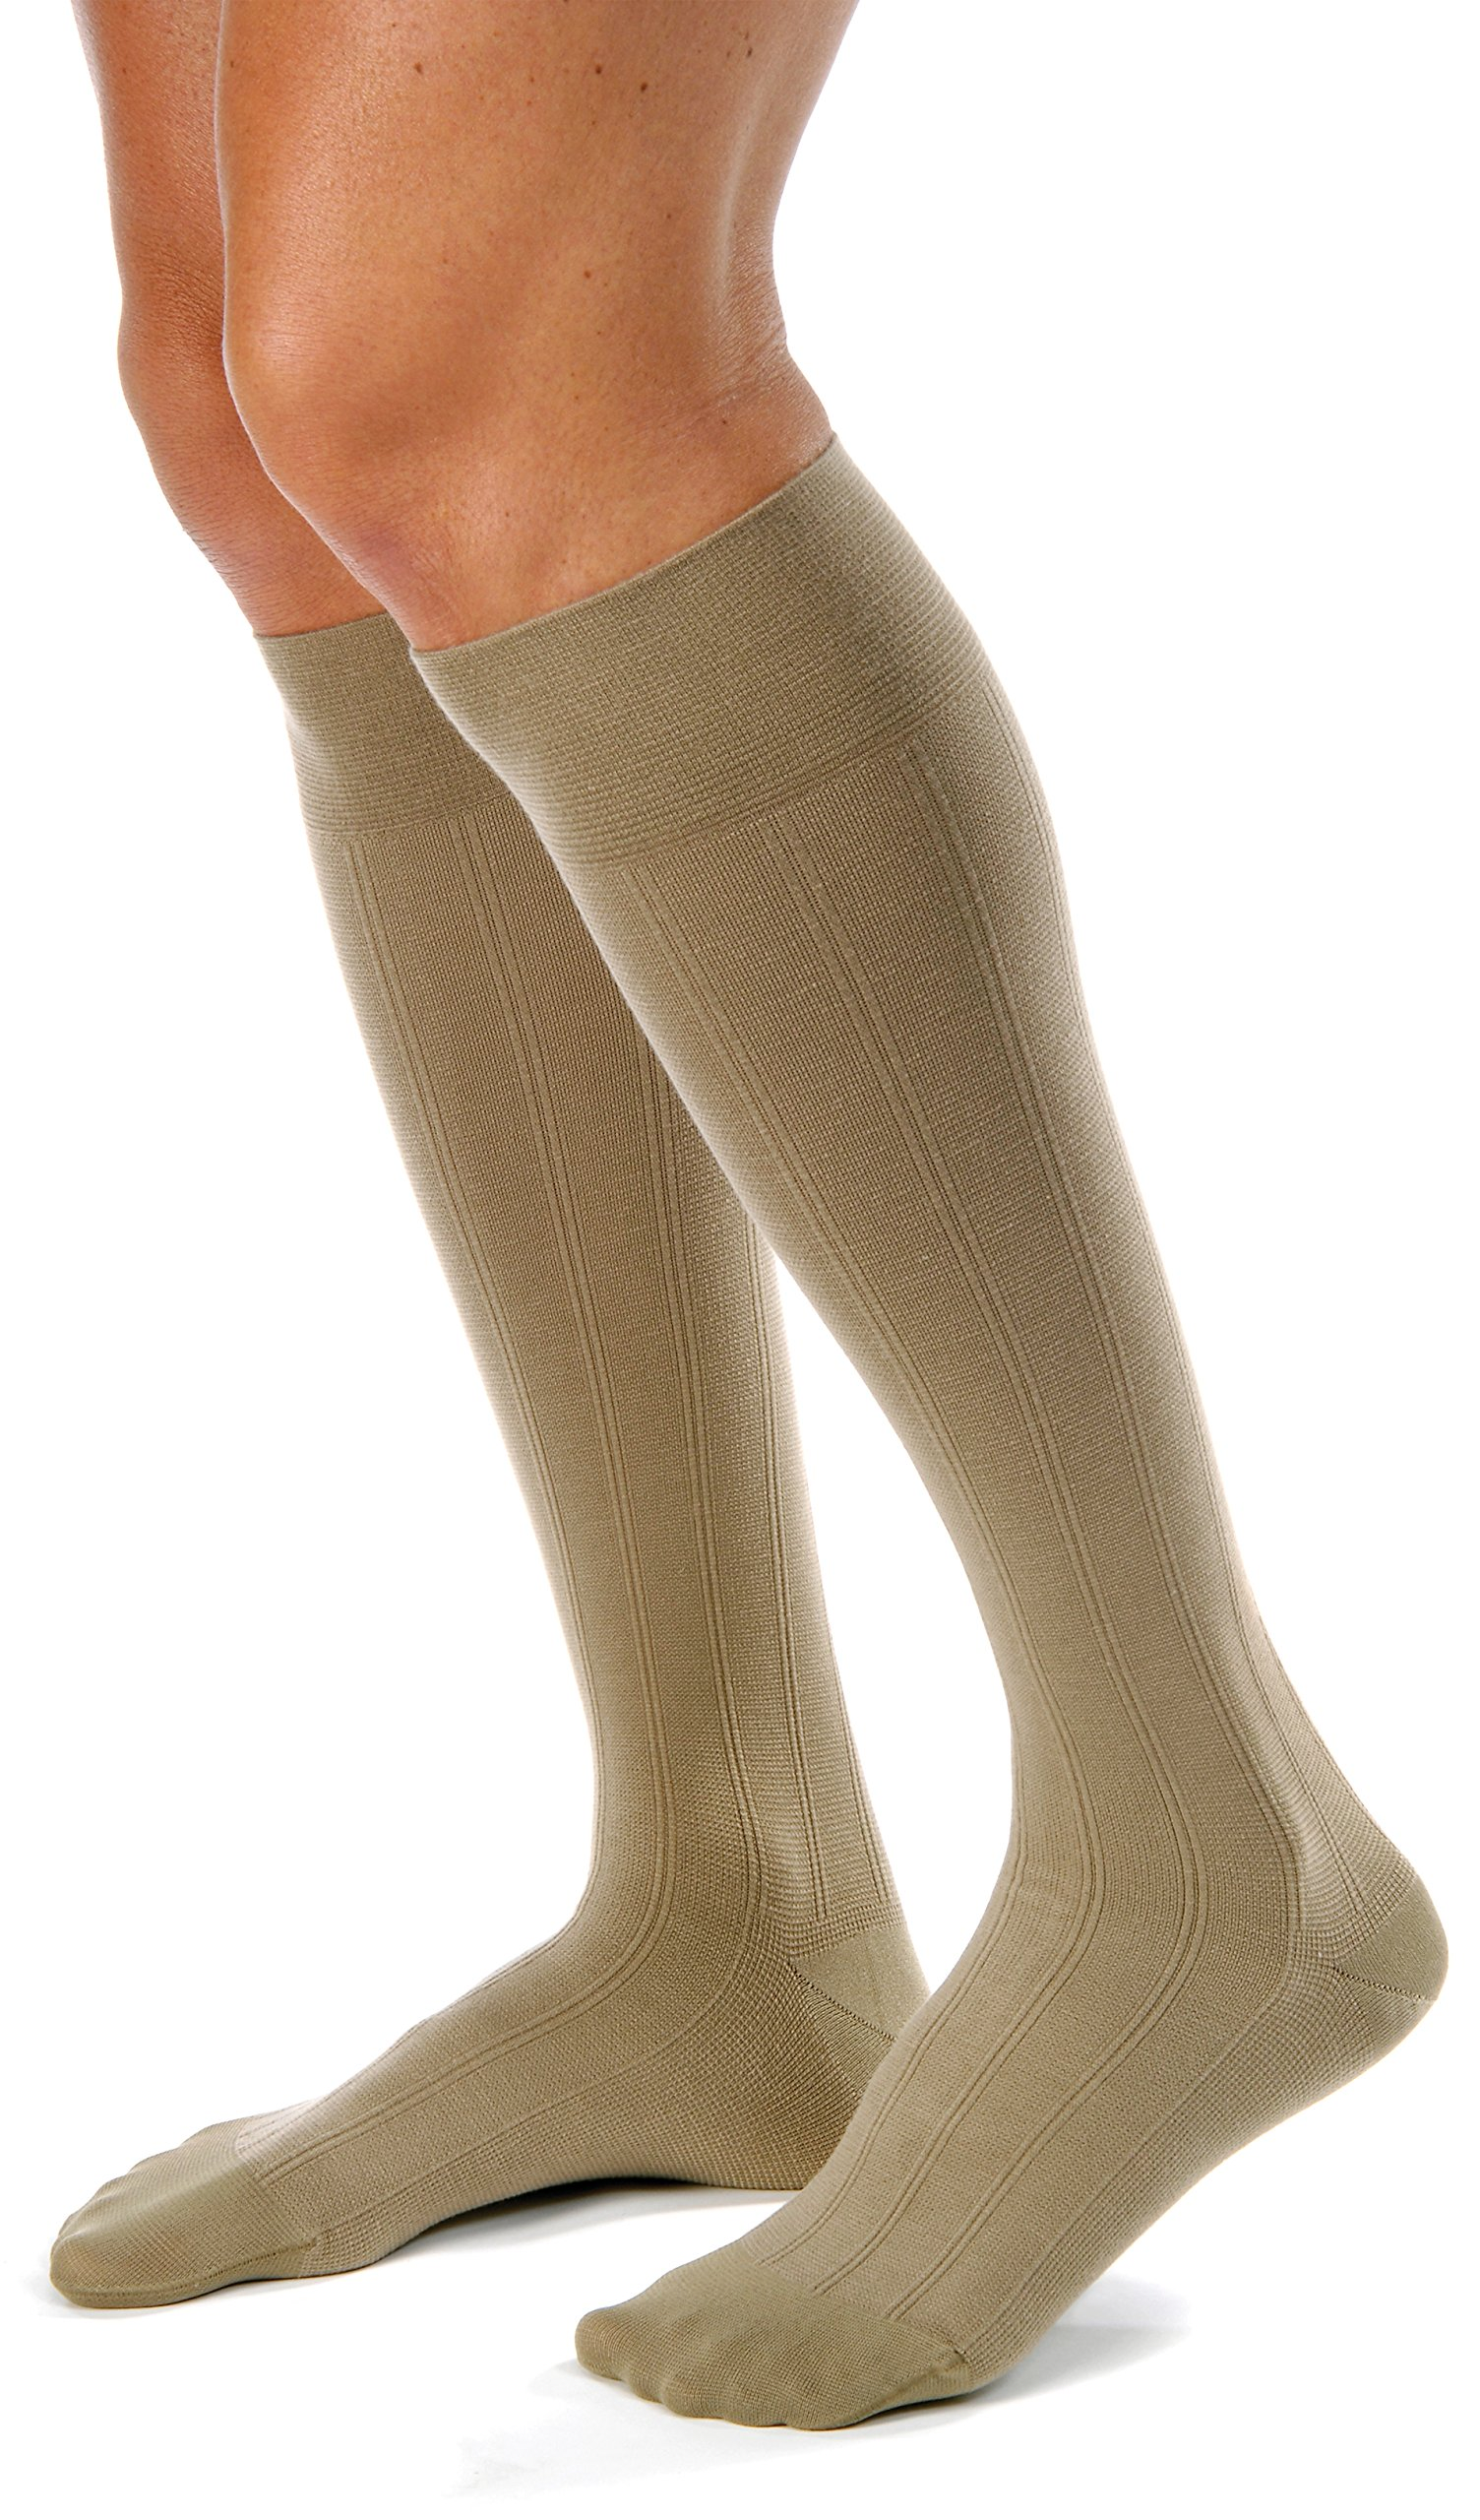 BSN Medical 113125 JOBST Men's Casual Socks with Closed Toe, Knee High, 20-30 mmHg, Medium, Khaki